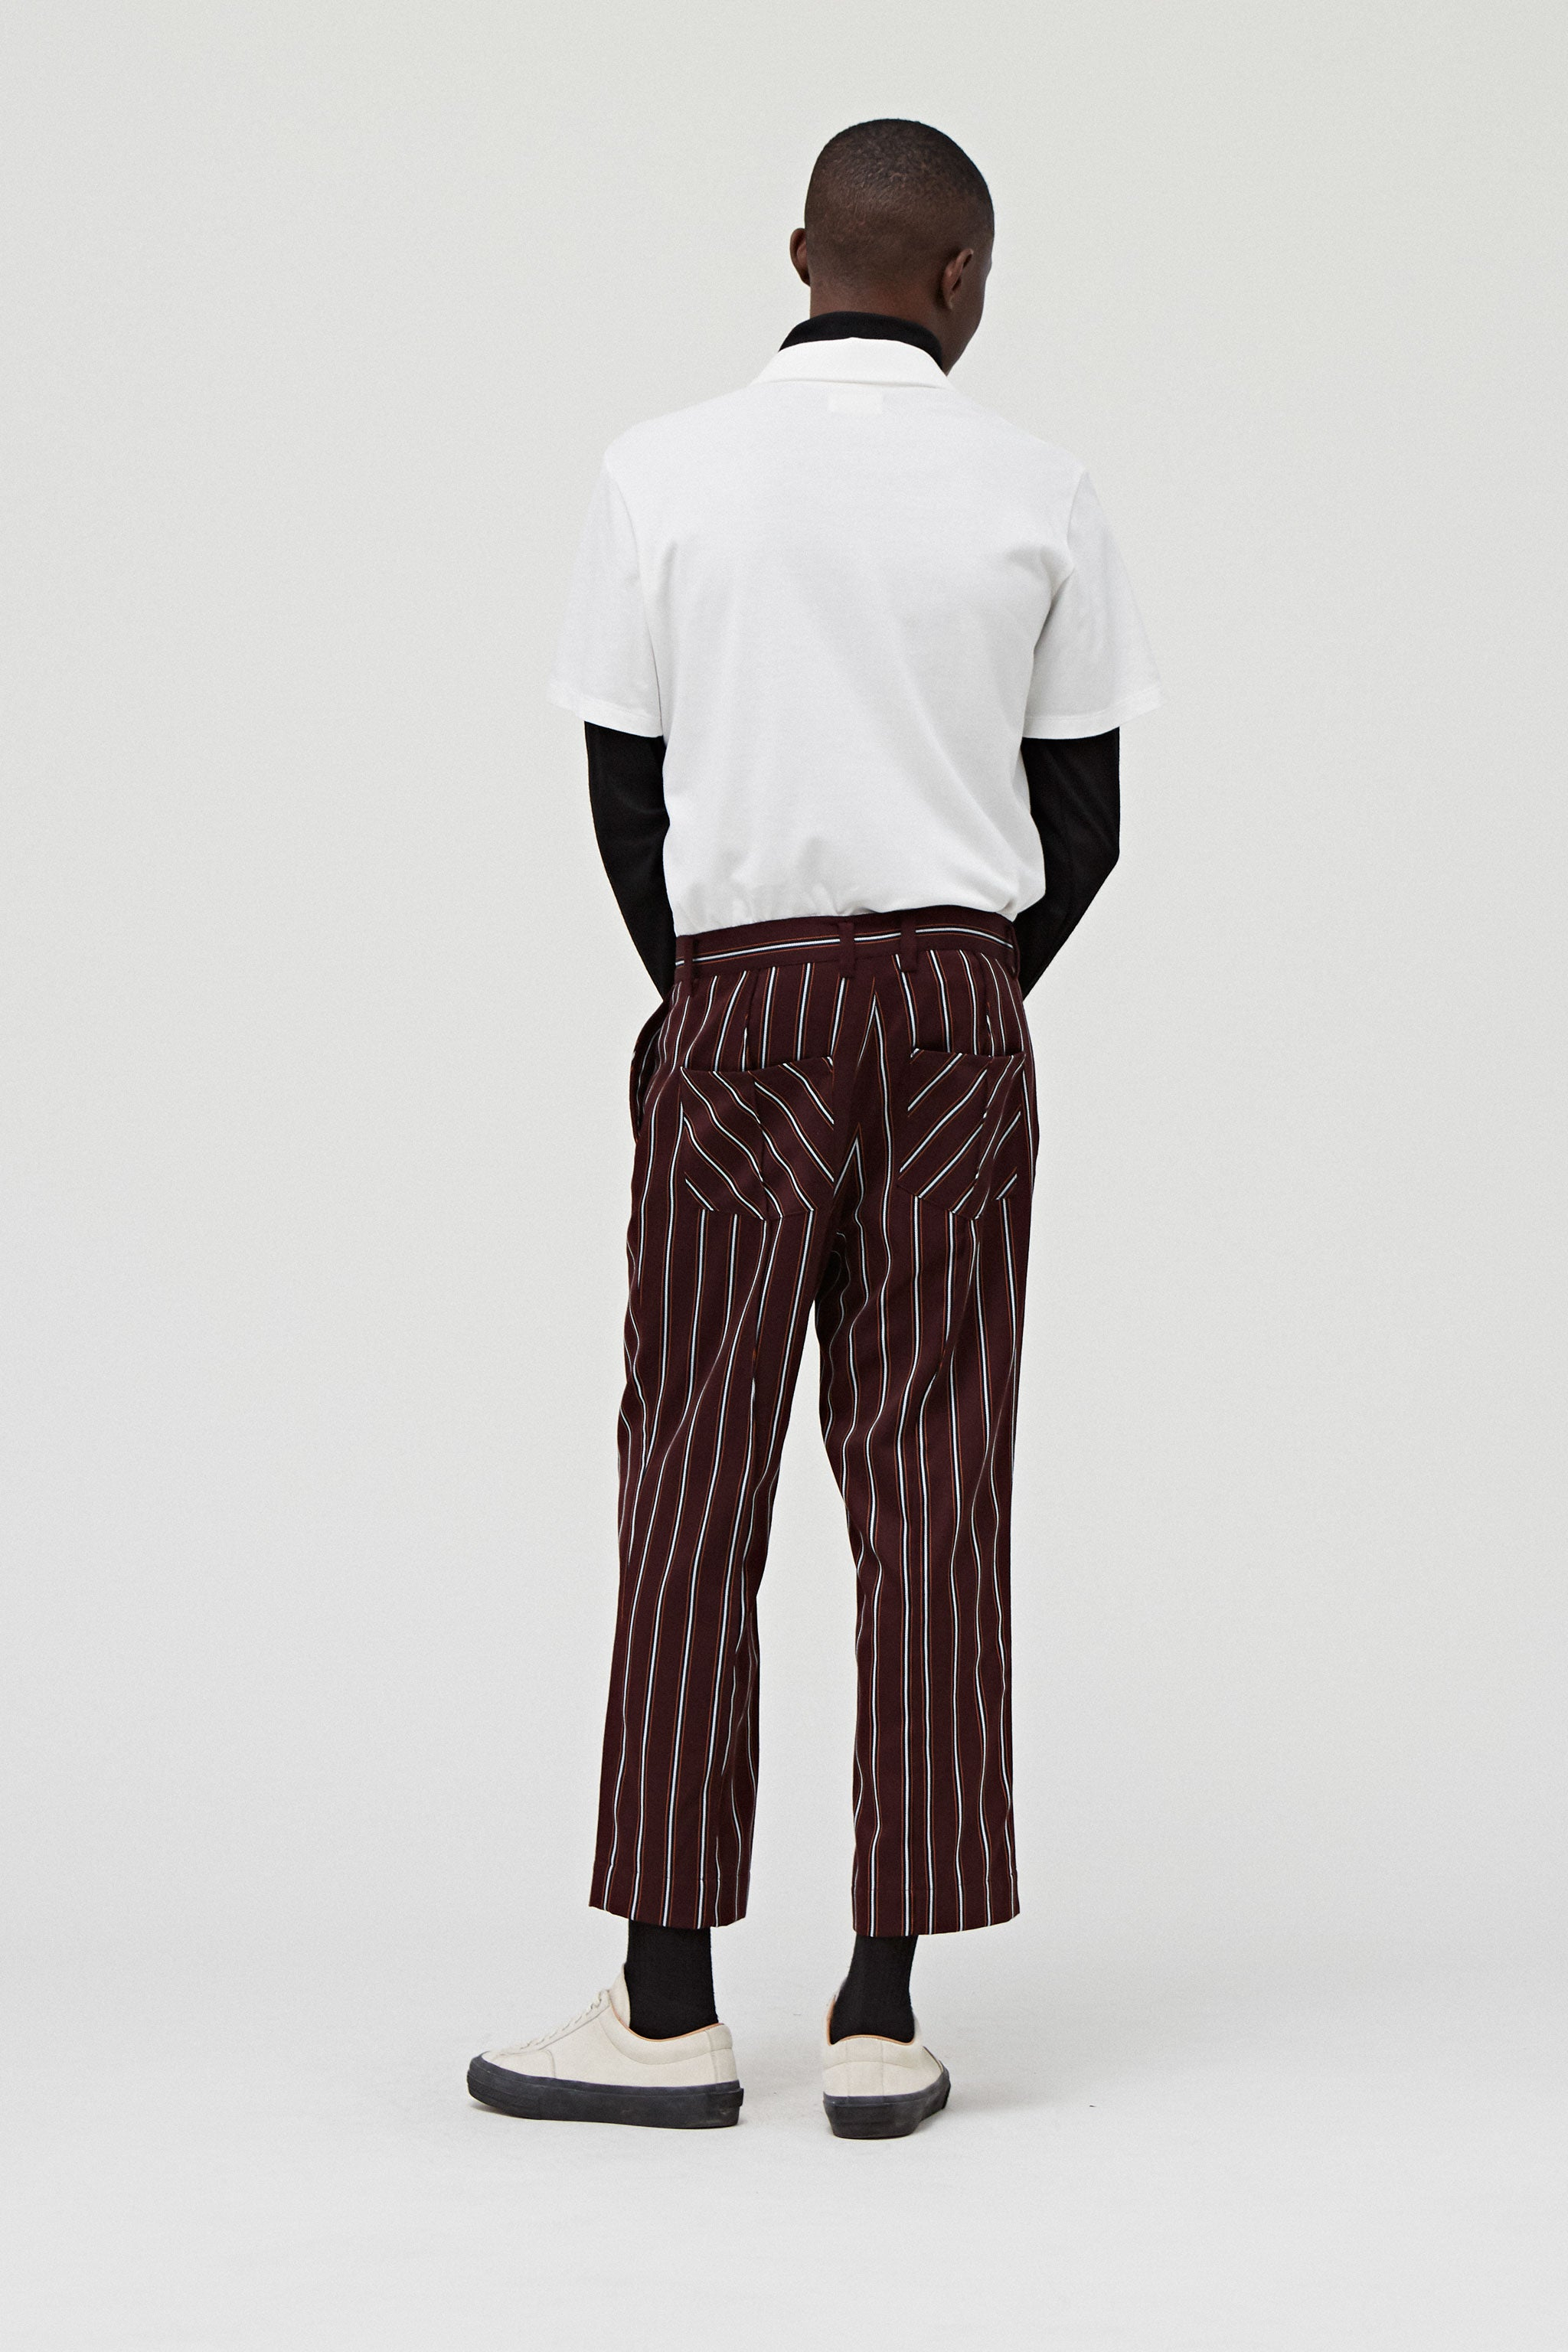 Goodfight FW18 Permapress Pants Brown Pinstripe